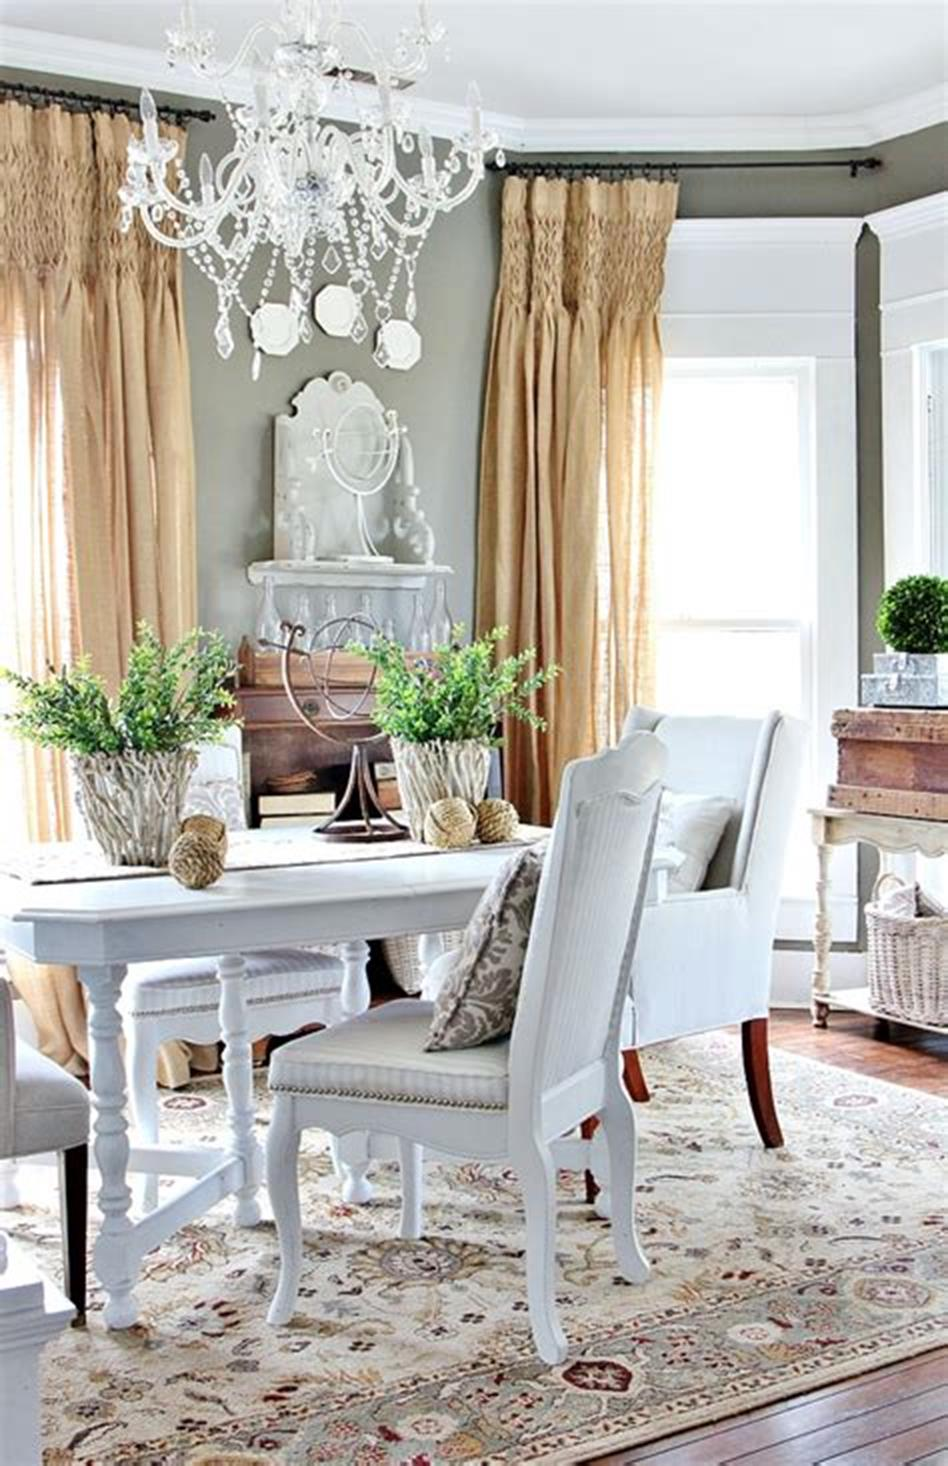 35 Stunning Spring Kitchen And Dining Room Decorating Ideas 2019